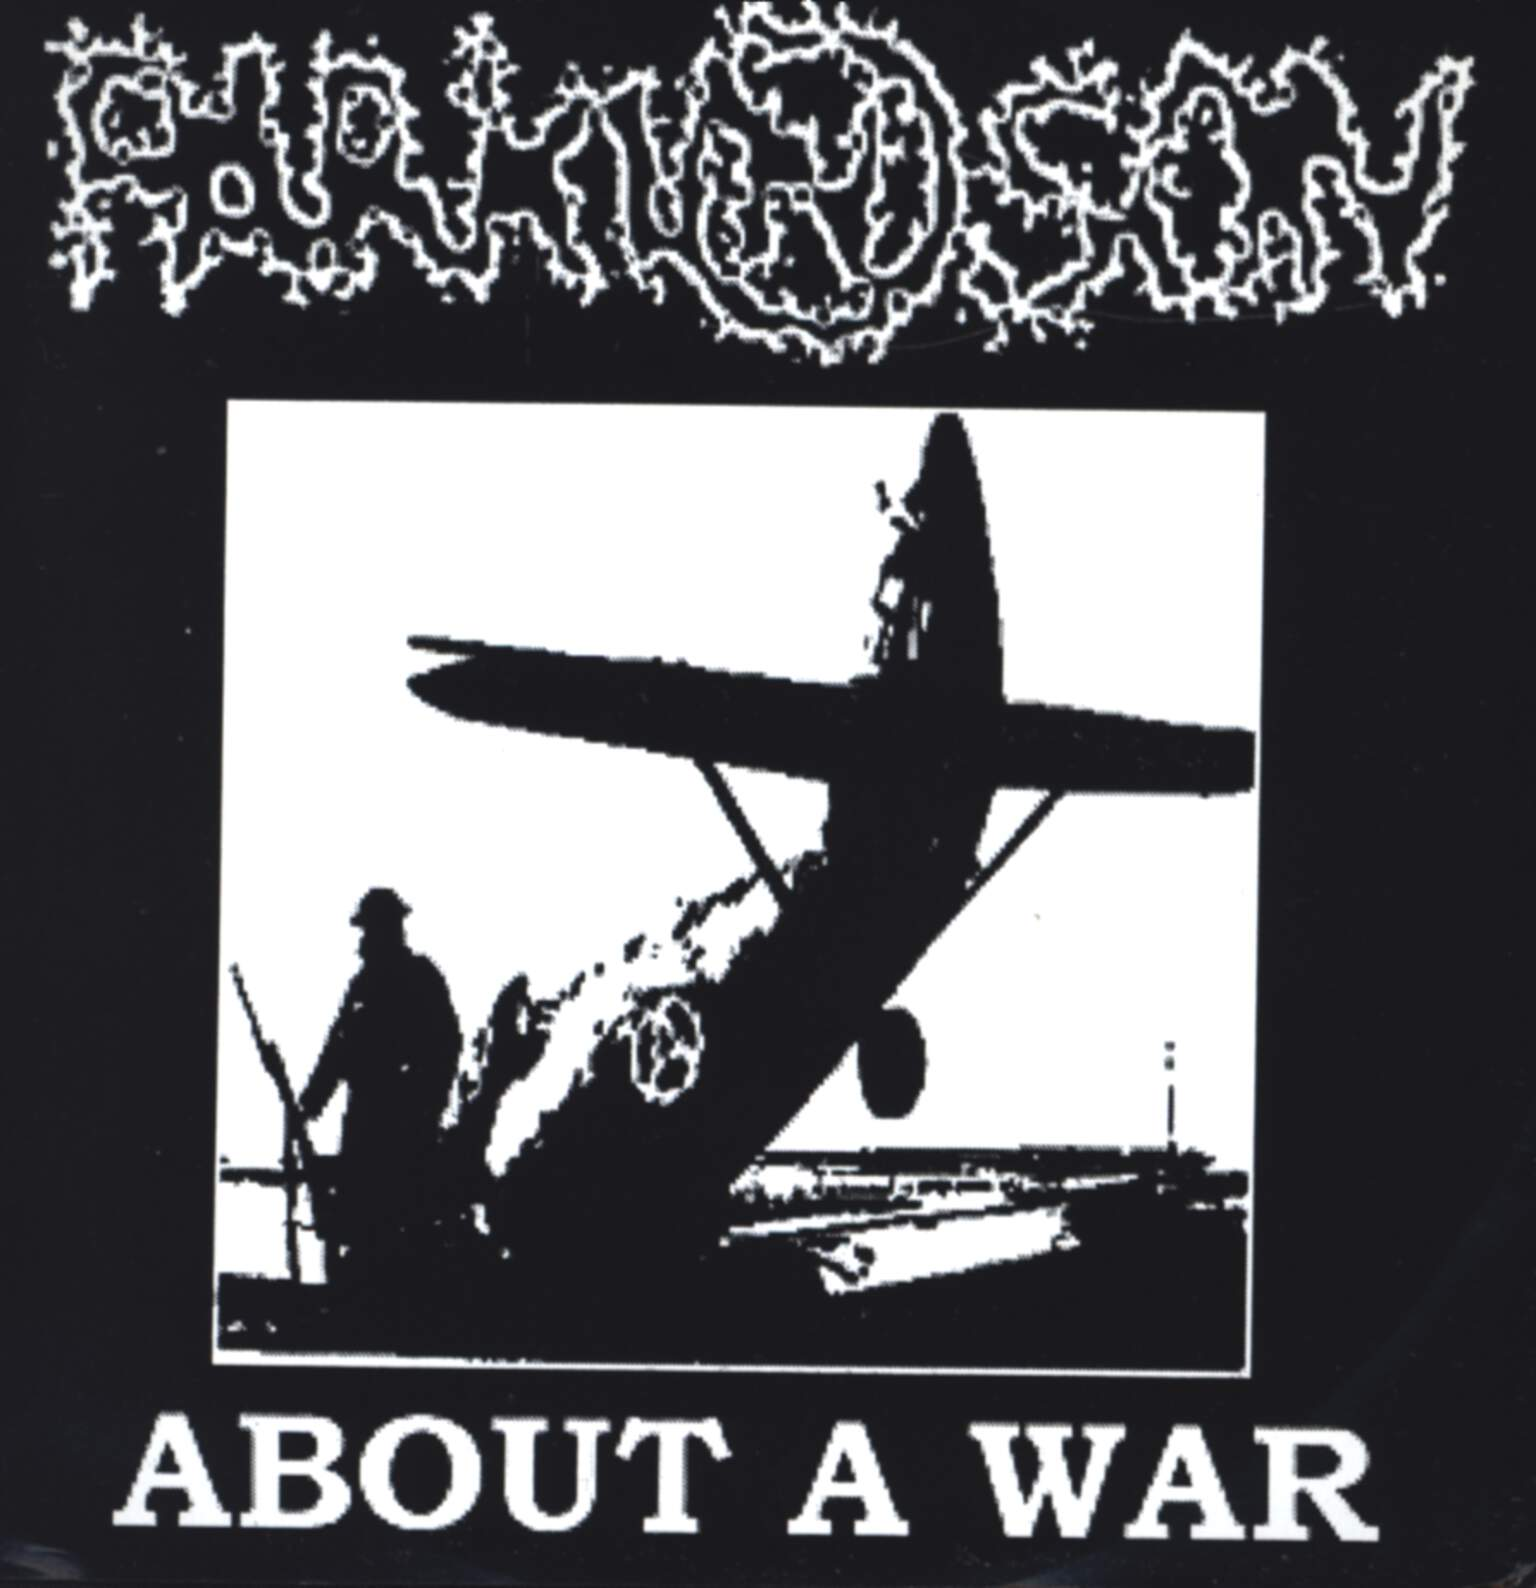 Parkinson: About A War, Mini CD